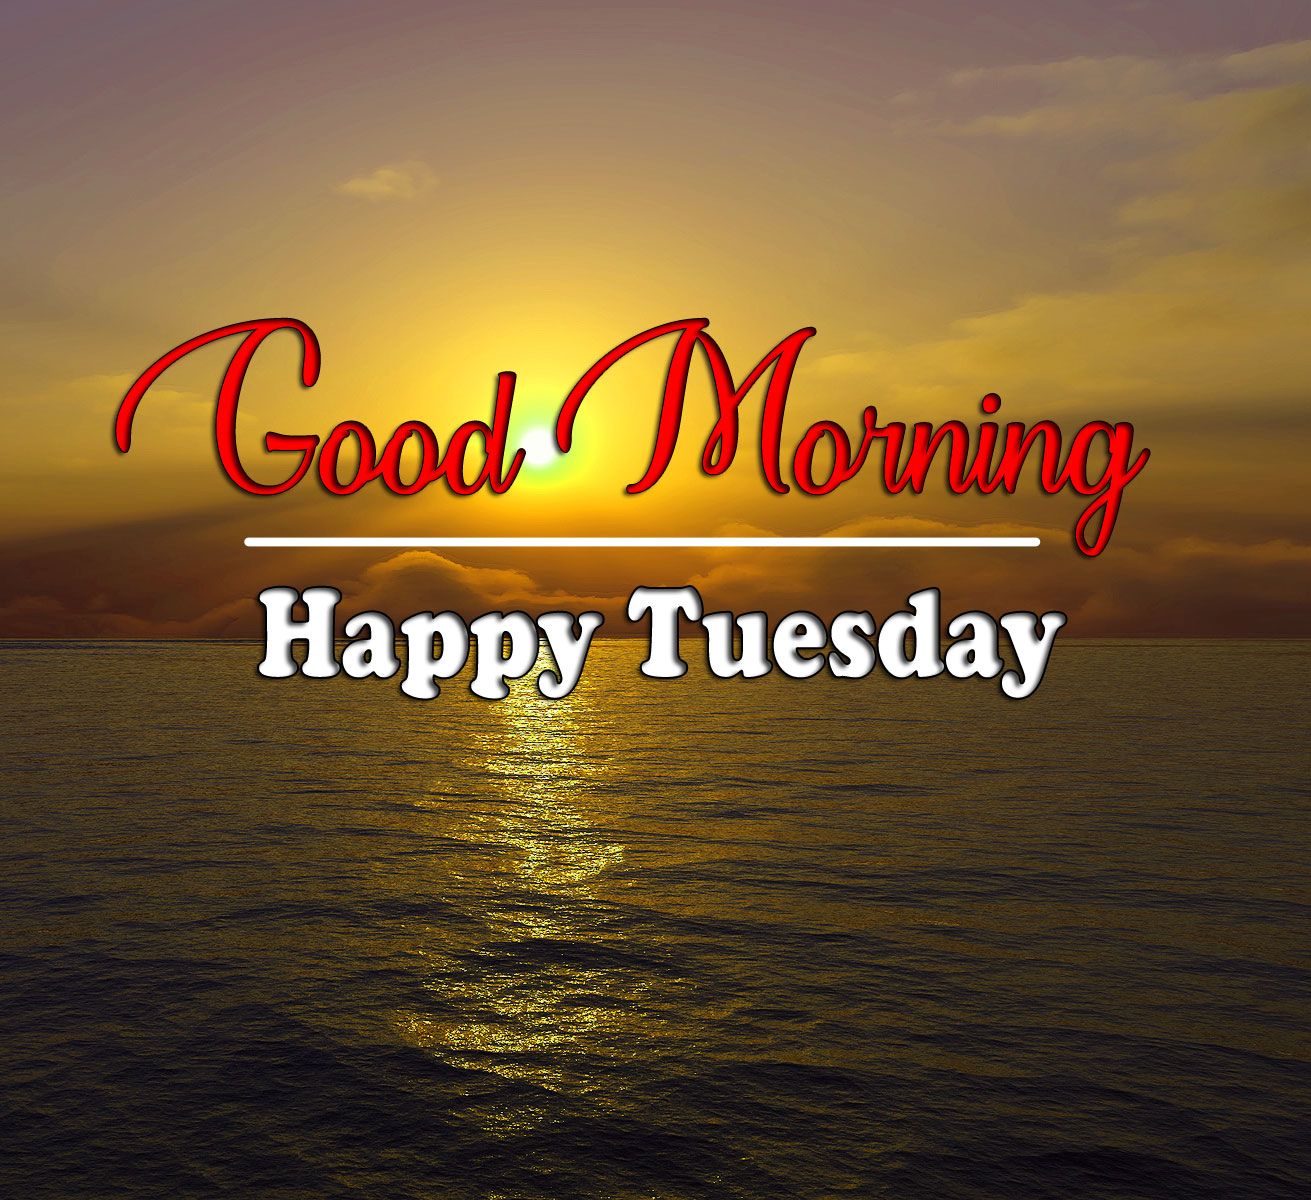 Free HD Tuesday Good morning Images 3